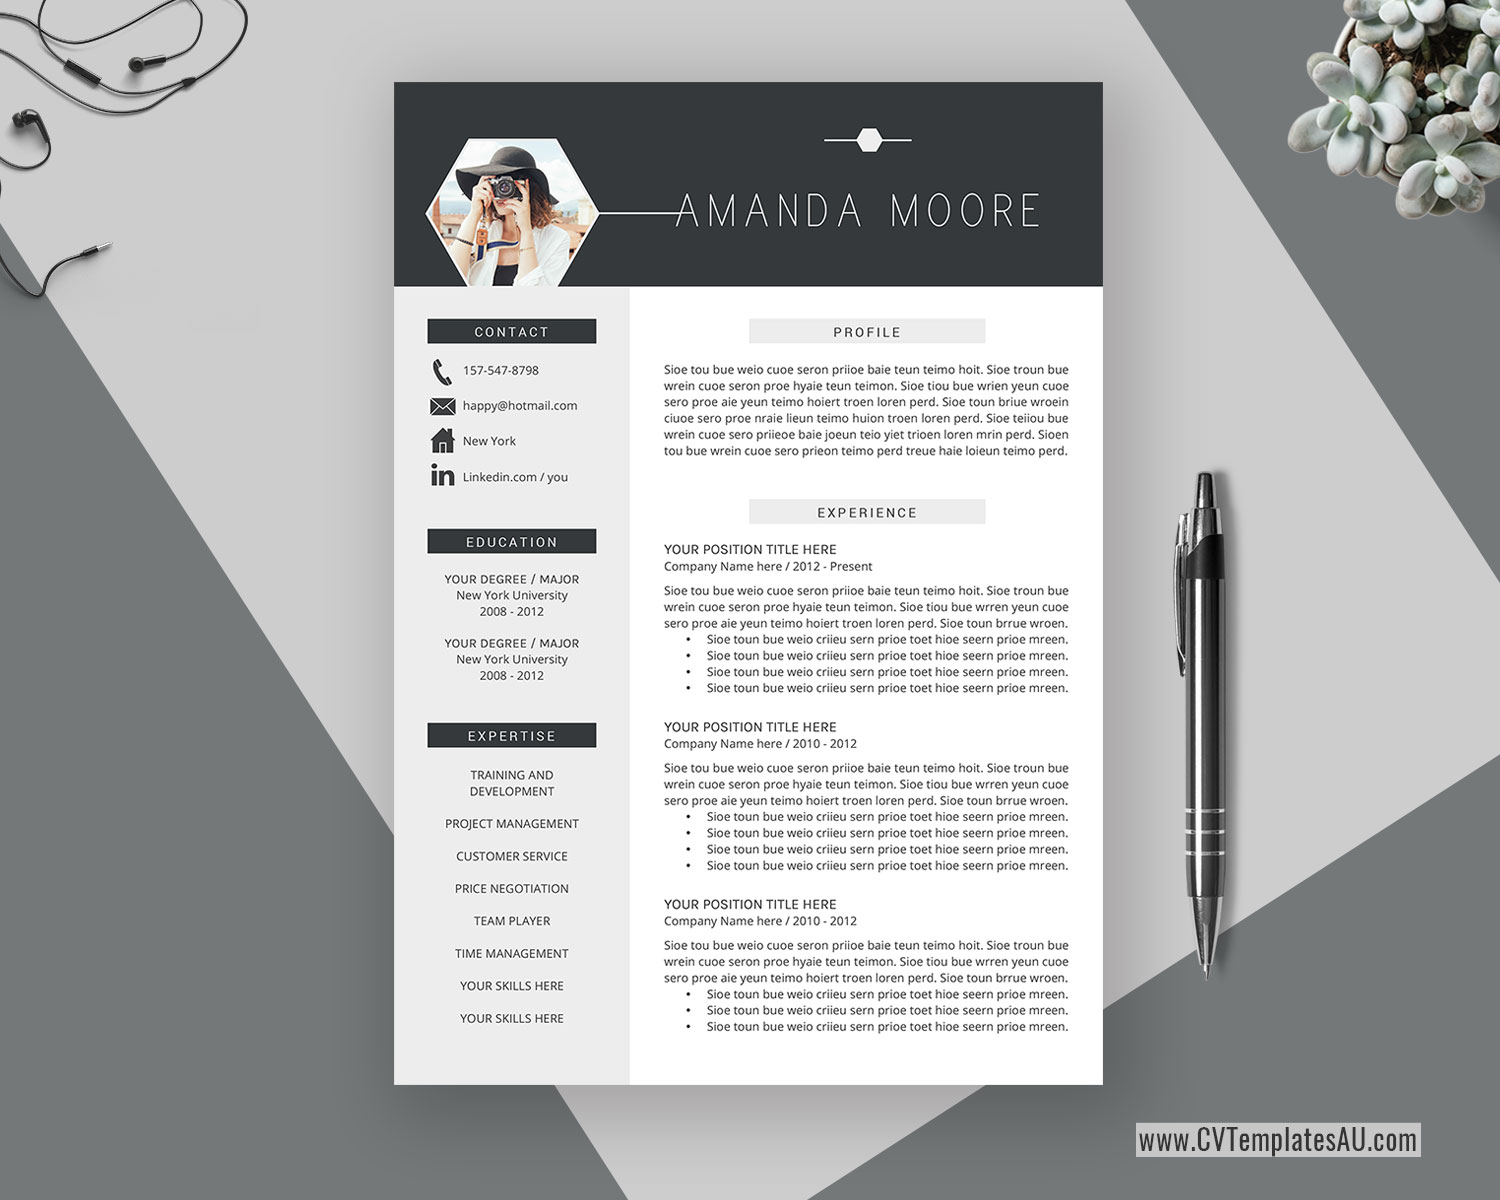 Professional Cv Template For Microsoft Word Cover Letter Curriculum Vitae Modern And Creative Resume Design Teacher Resume 1 Page 2 Page 3 Page Instant Download Cvtemplatesau Com,Kitchen Pantry Designs For Small Spaces